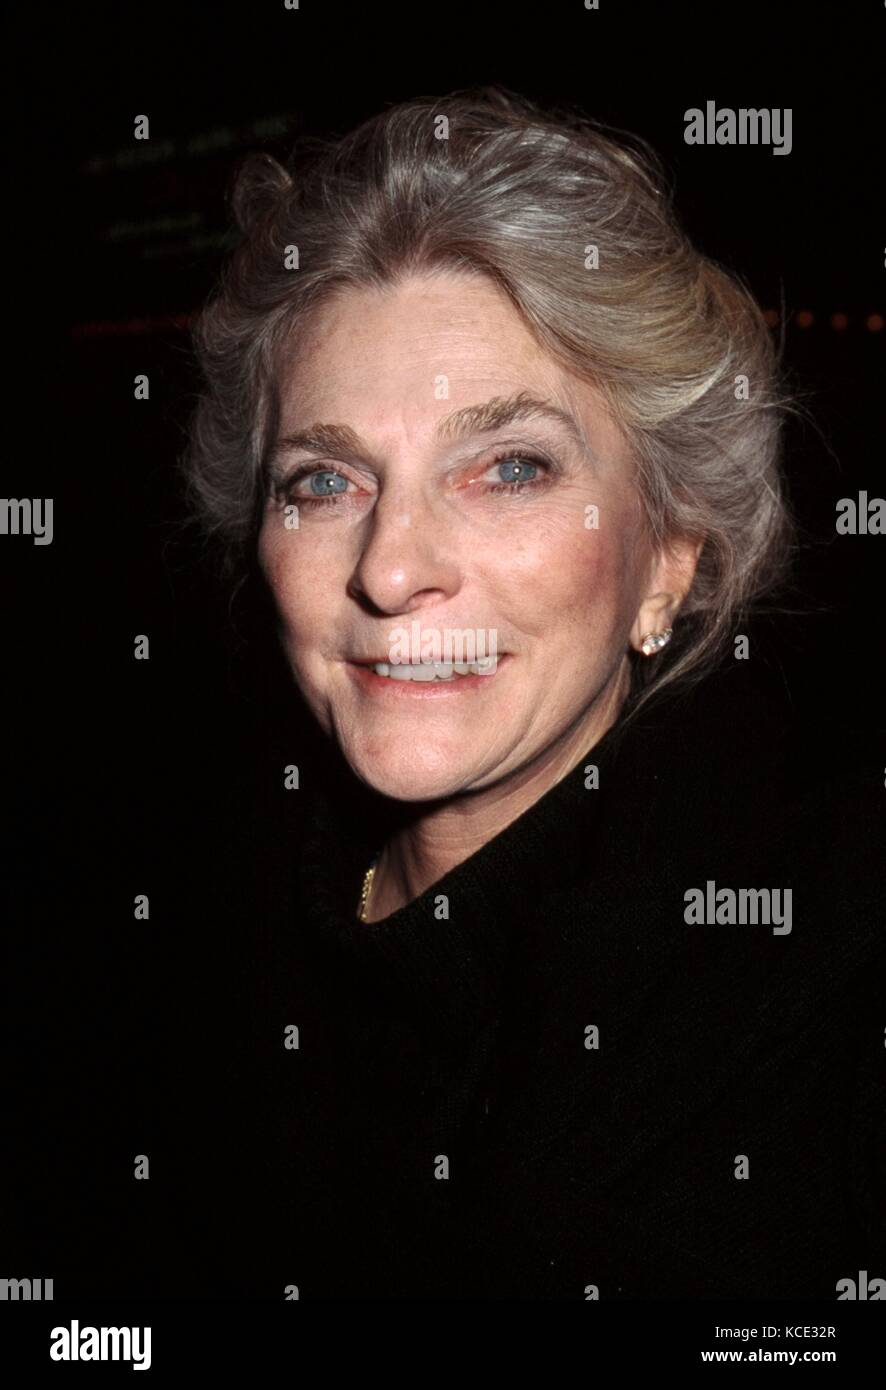 http://c8.alamy.com/comp/KCE32R/judy-collins-attending-a-performance-of-elaine-stritch-at-liberty-KCE32R.jpg Elaine